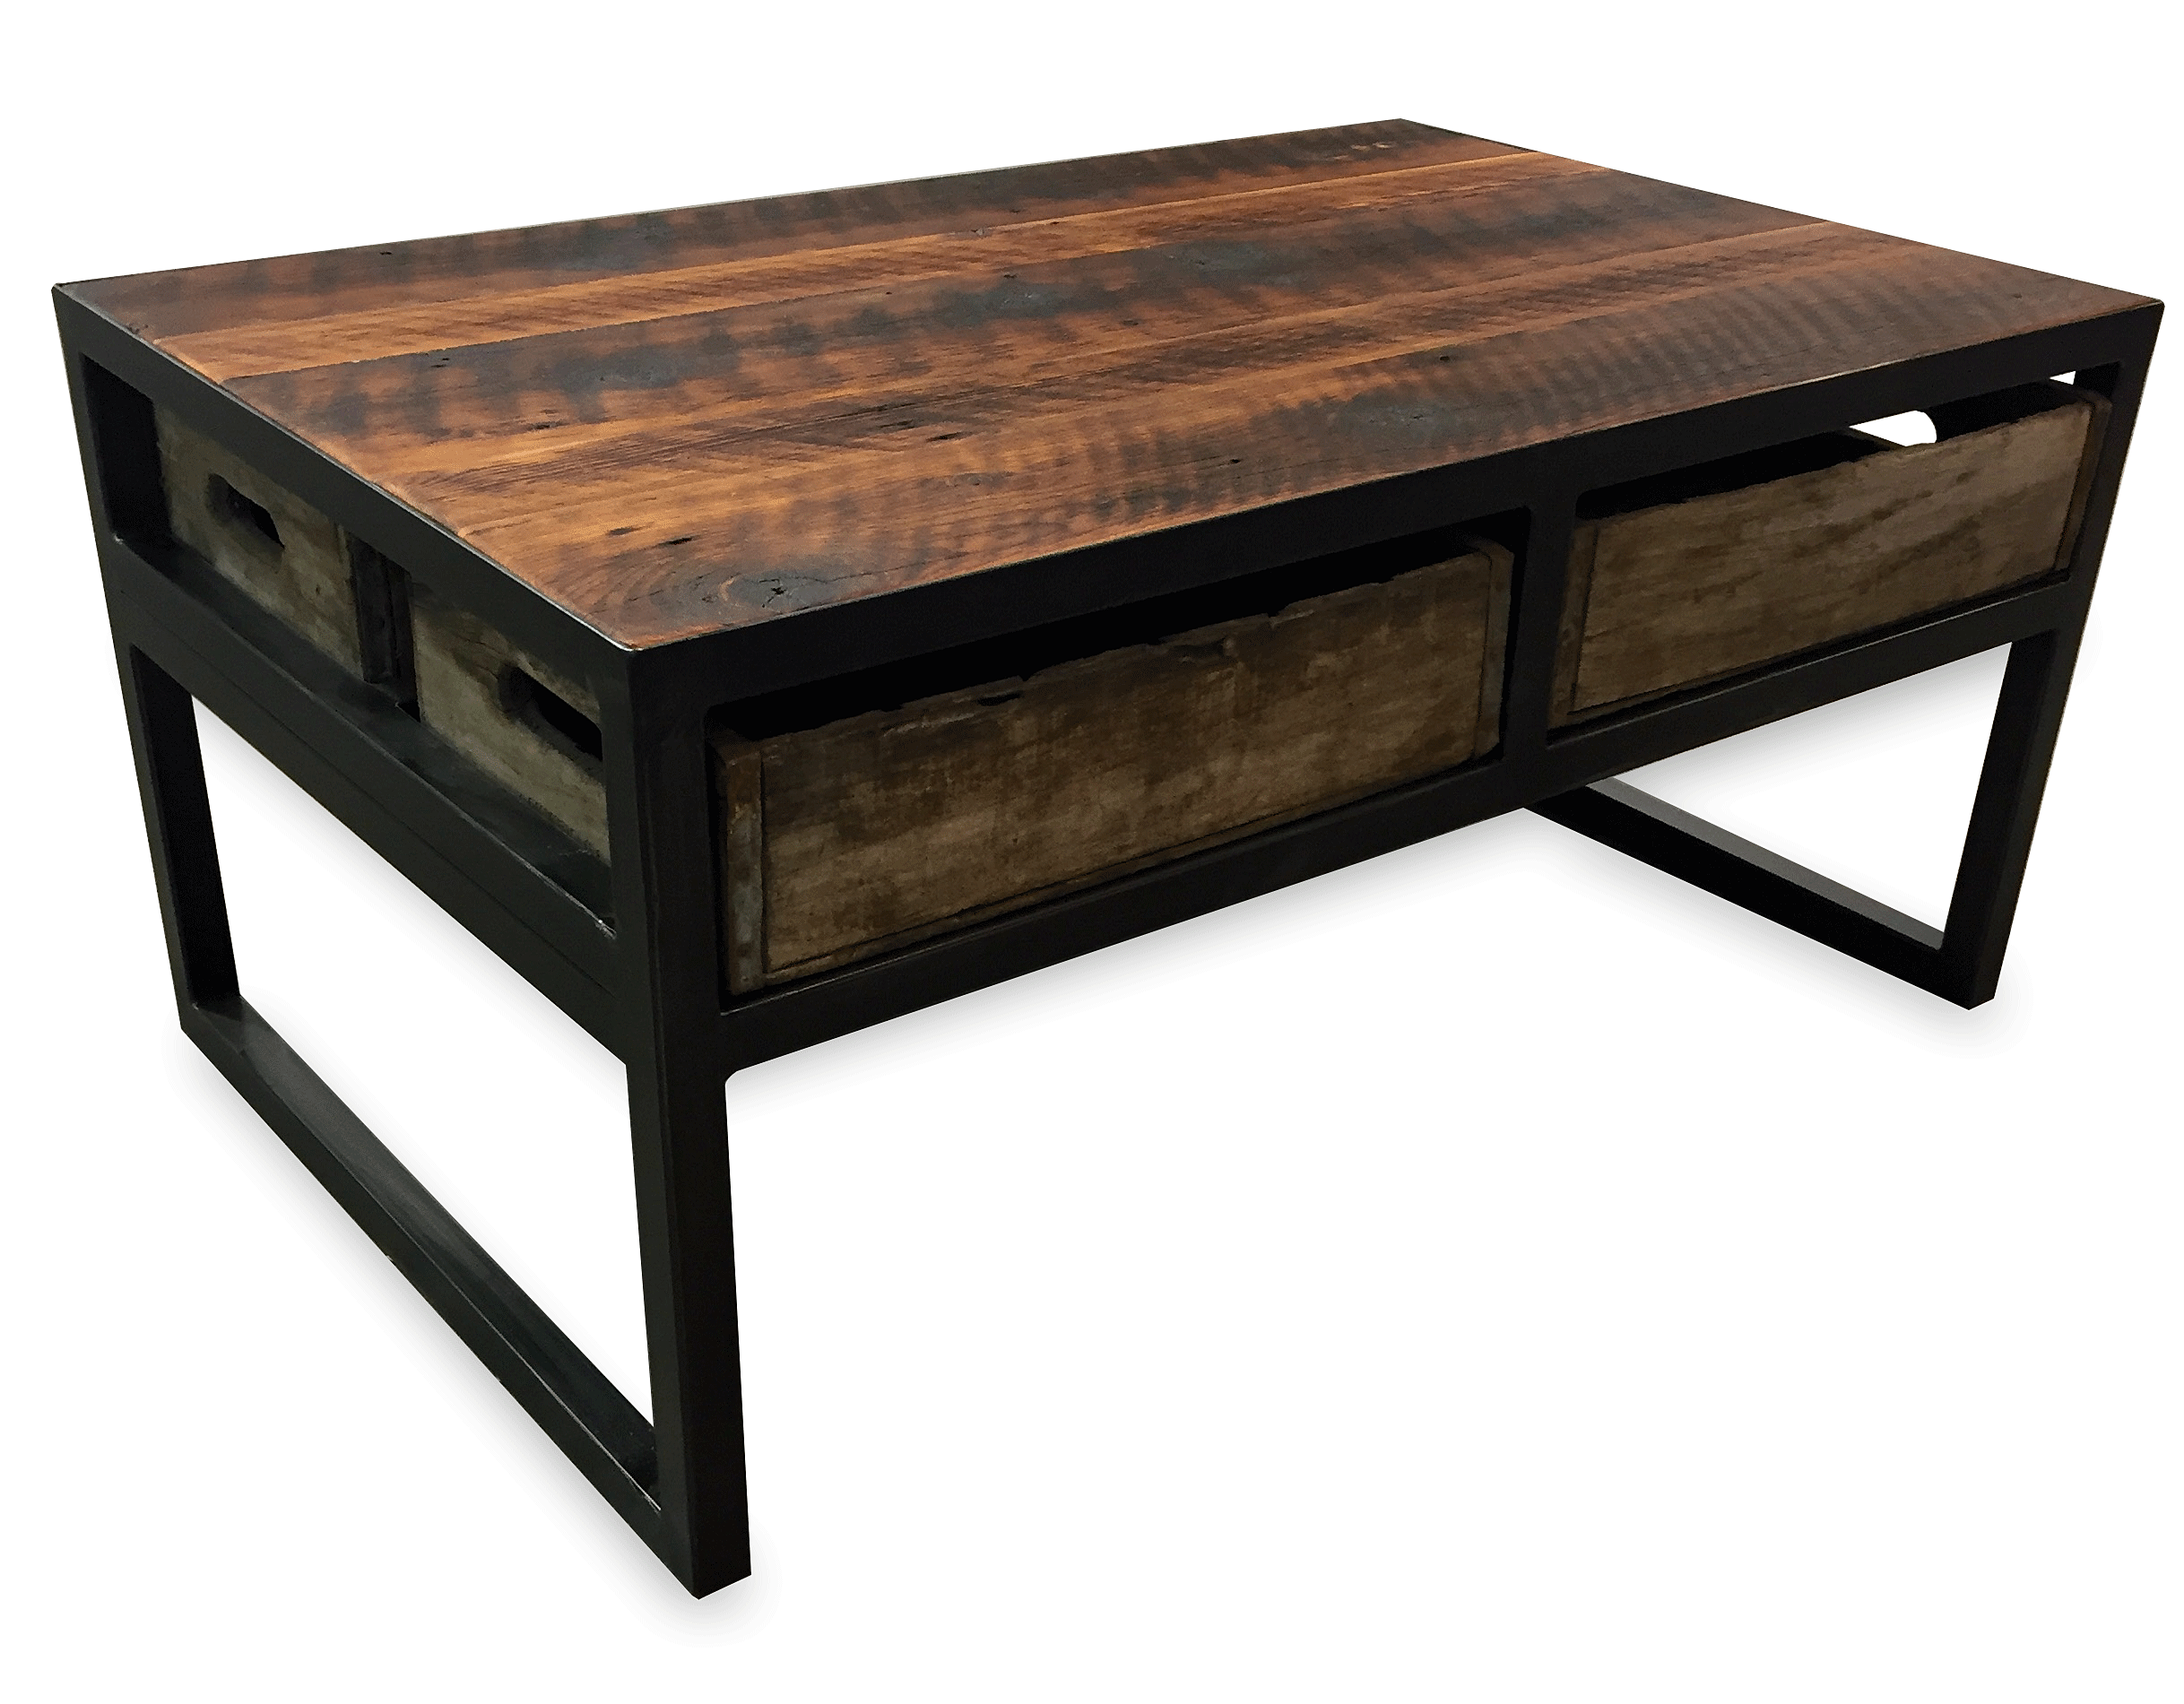 Montana Angle Worx Refined Industrial Furniture Crate Coffee Table 2